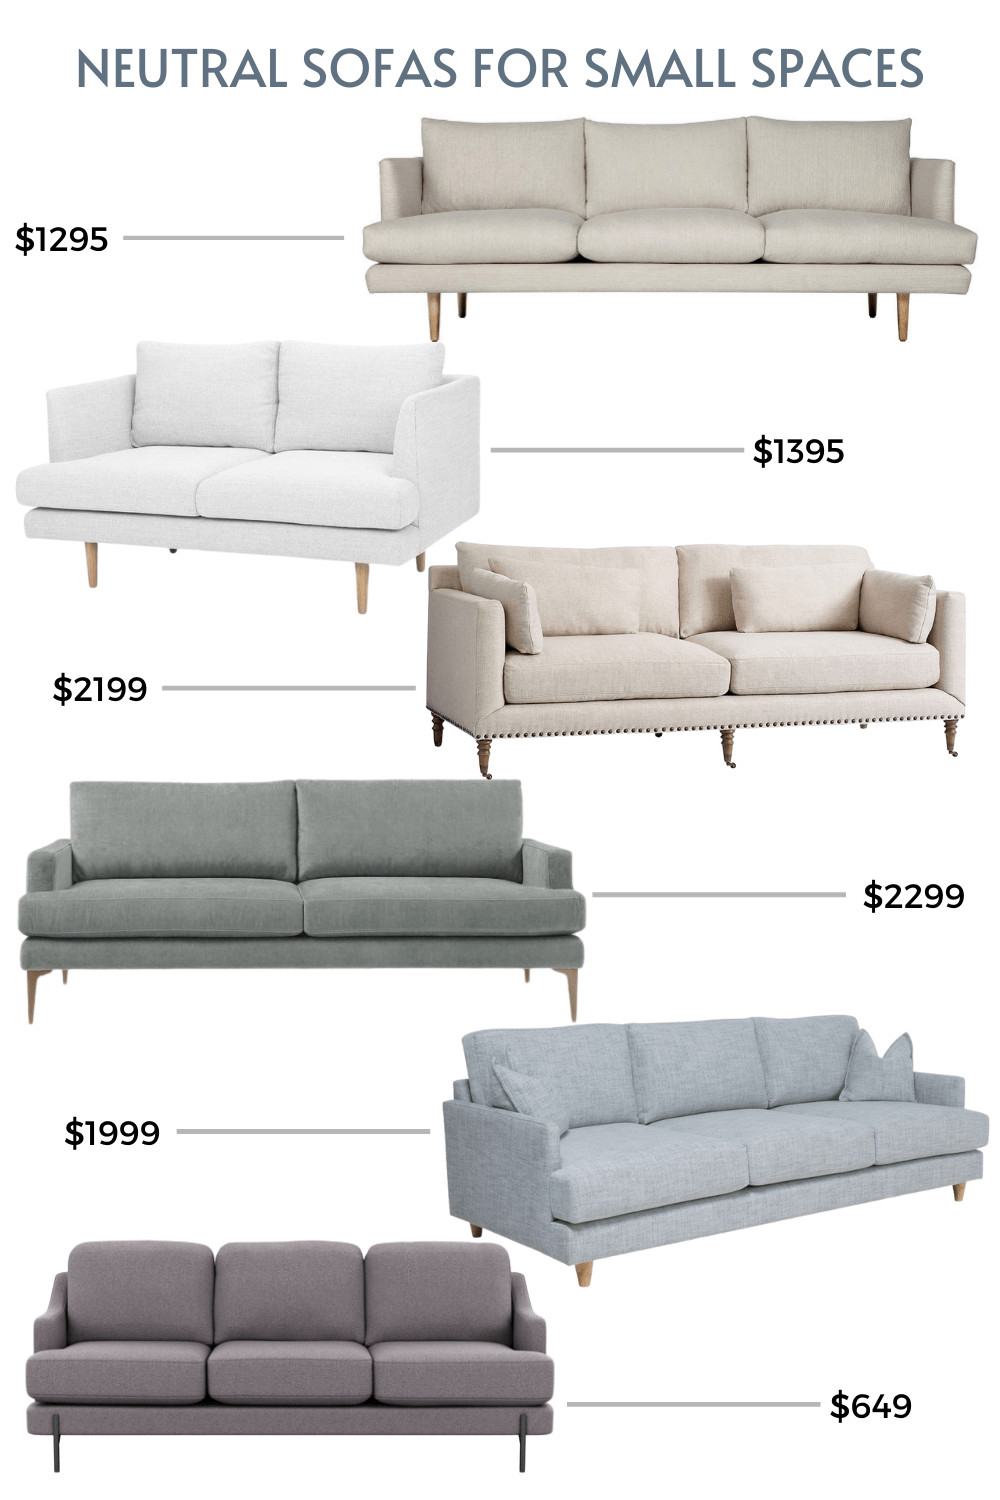 neutral sofas for small spaces small living room sofa mood board